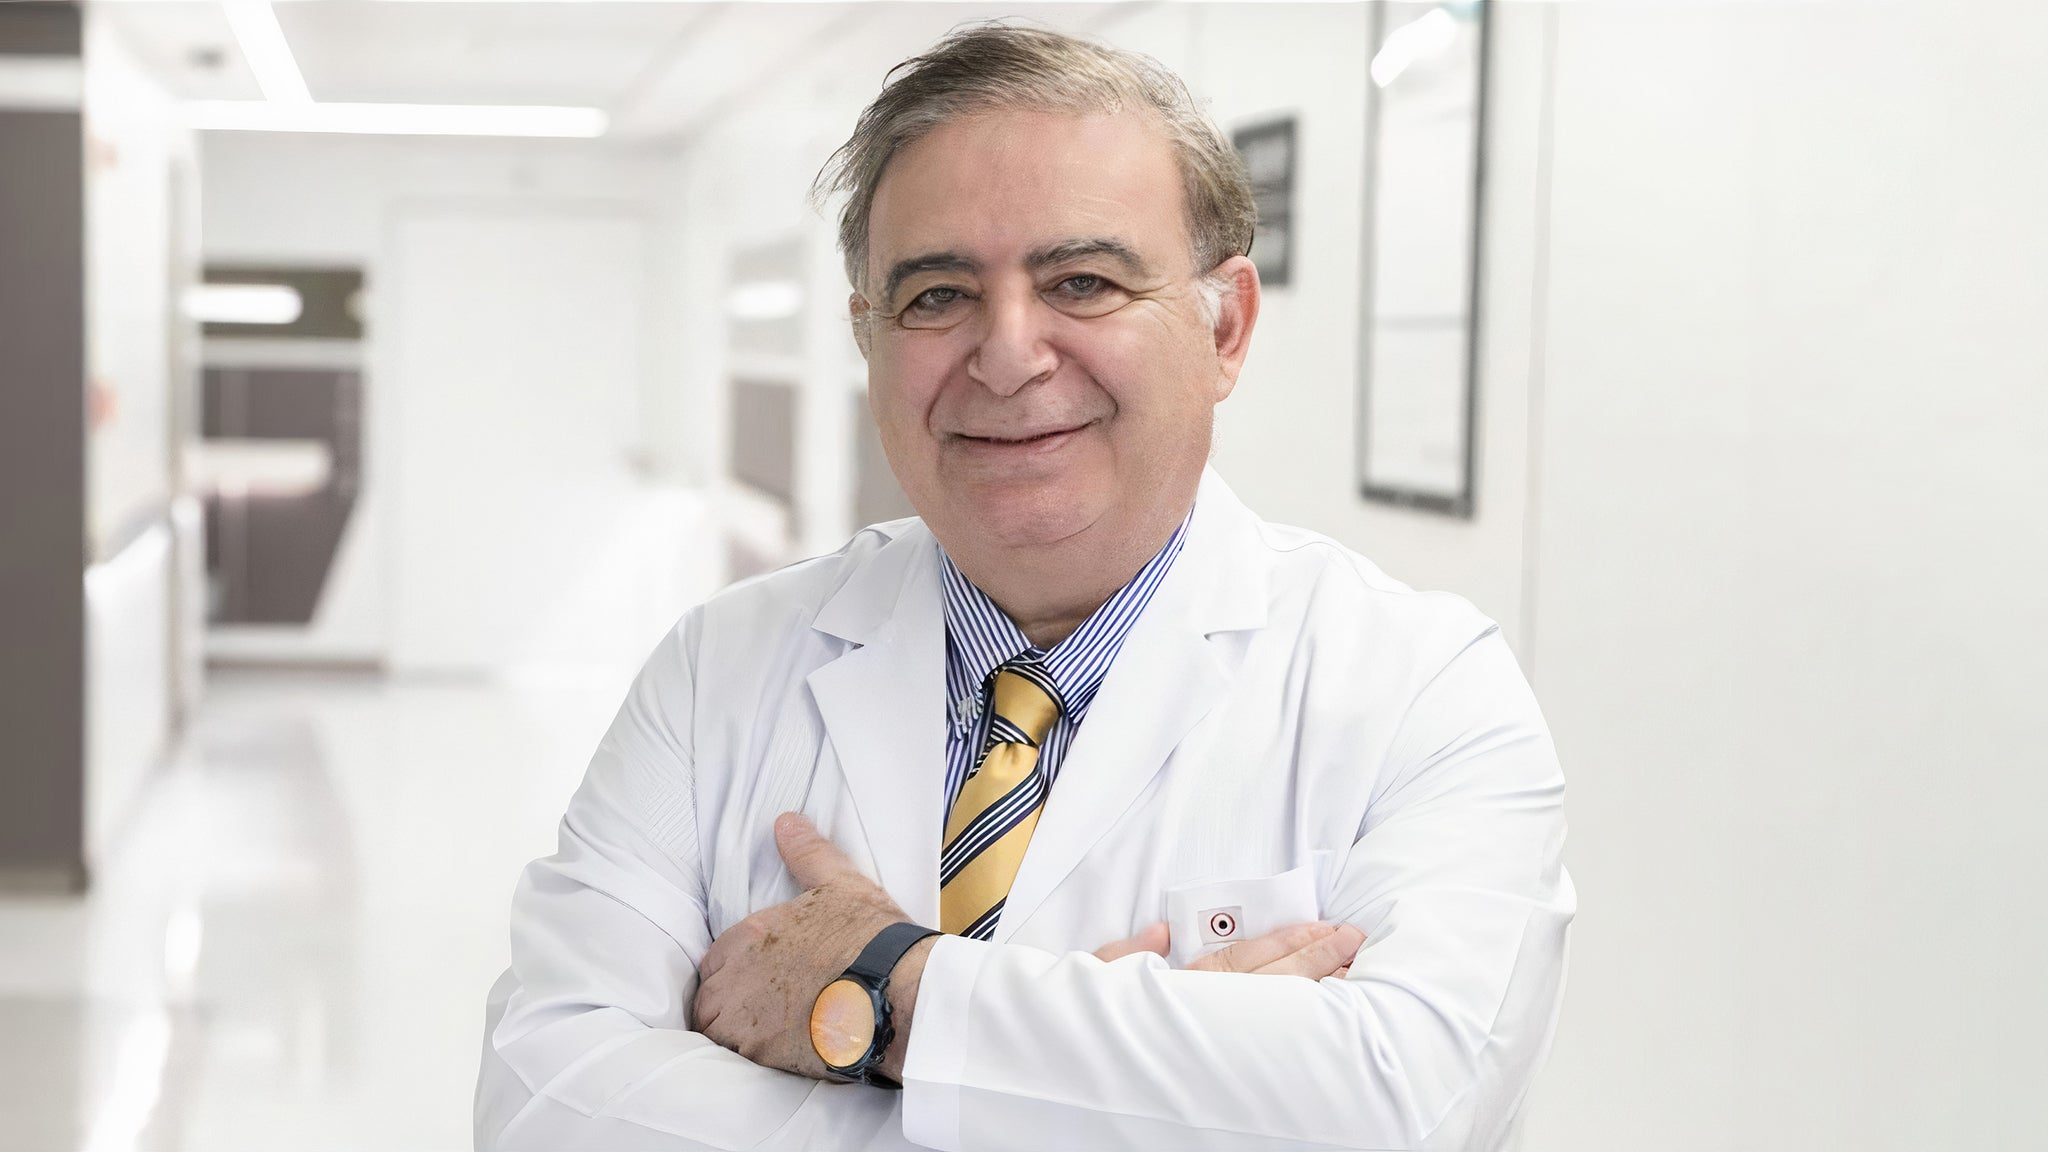 Prof. Dr. Salih Emri: A COVID-19 Doctor and Patient